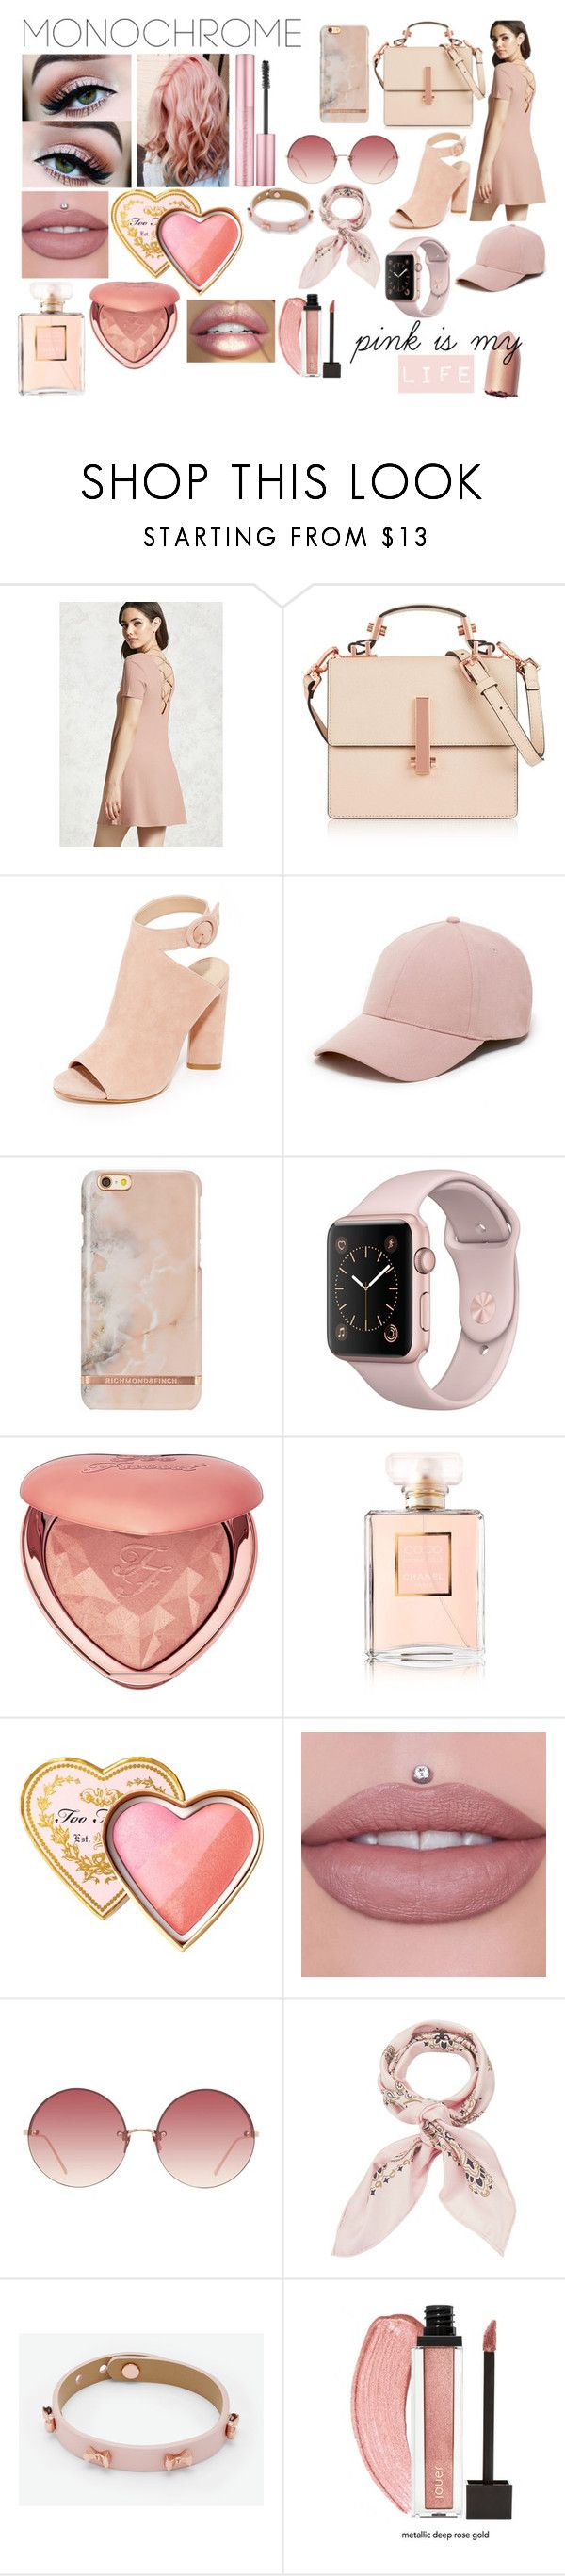 """pink is my life"" by valen200329 on Polyvore featuring moda, Forever 21, Kendall + Kylie, Sole Society, Too Faced Cosmetics, Chanel, Masquerade, Linda Farrow, Manipuri y Ted Baker"